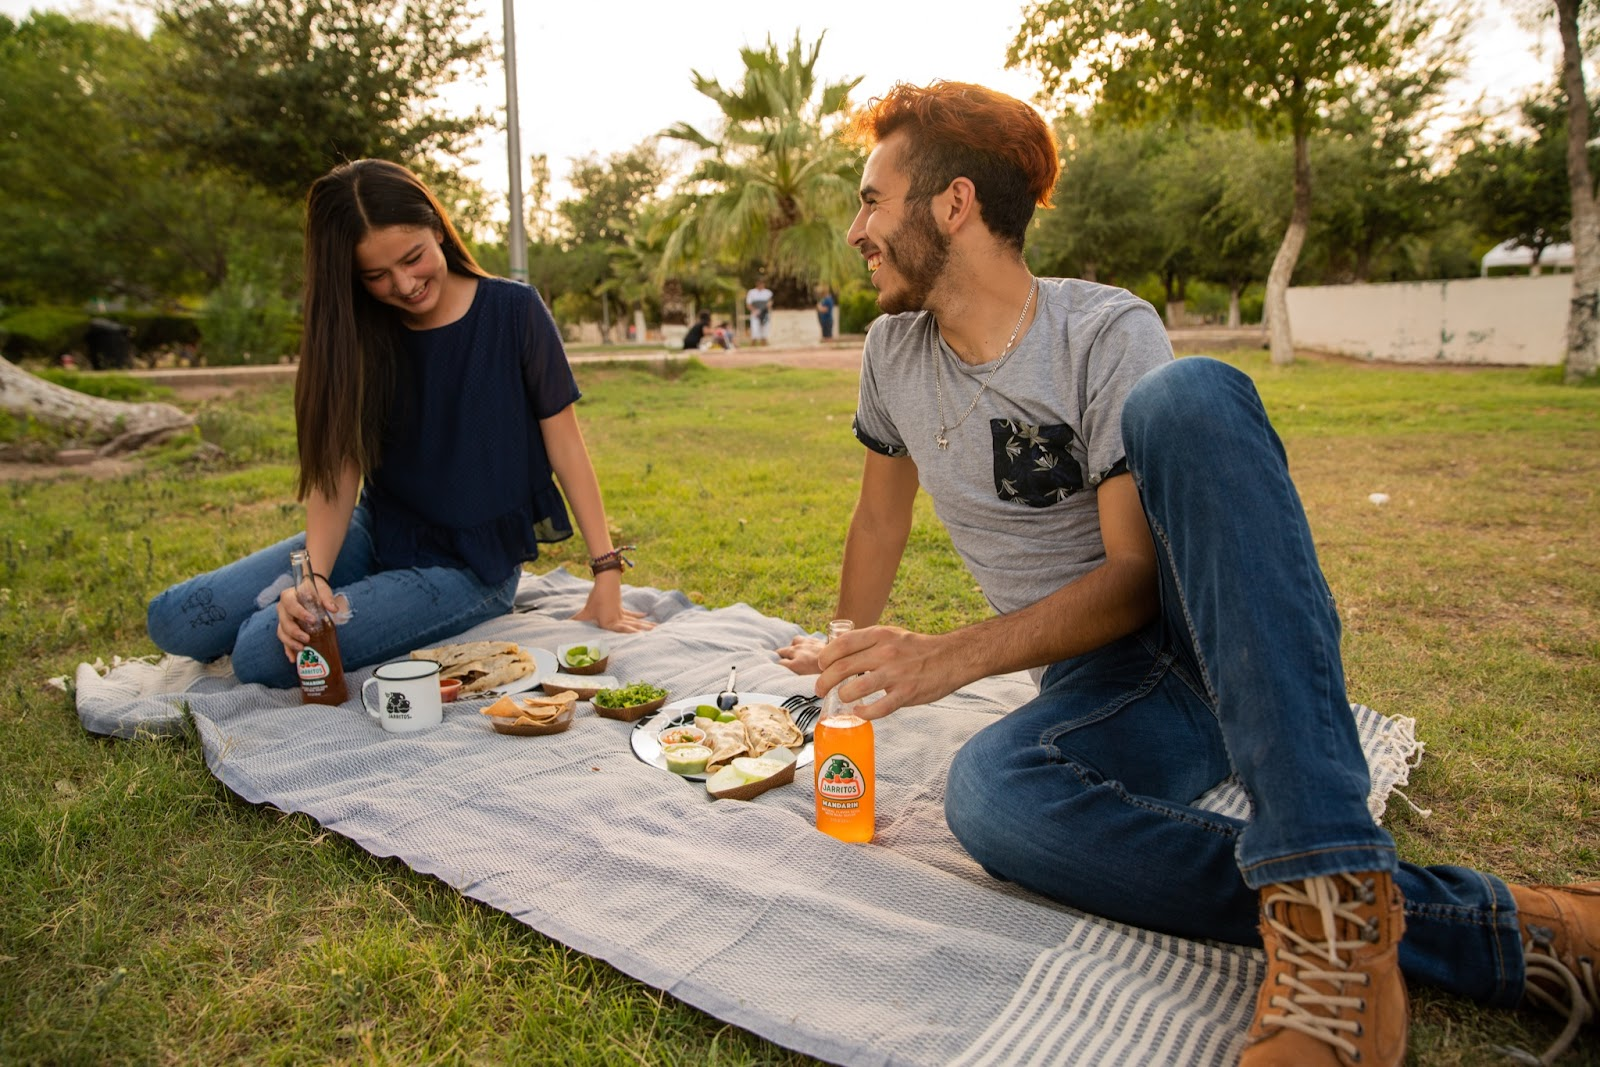 picnic newly-wed date idea